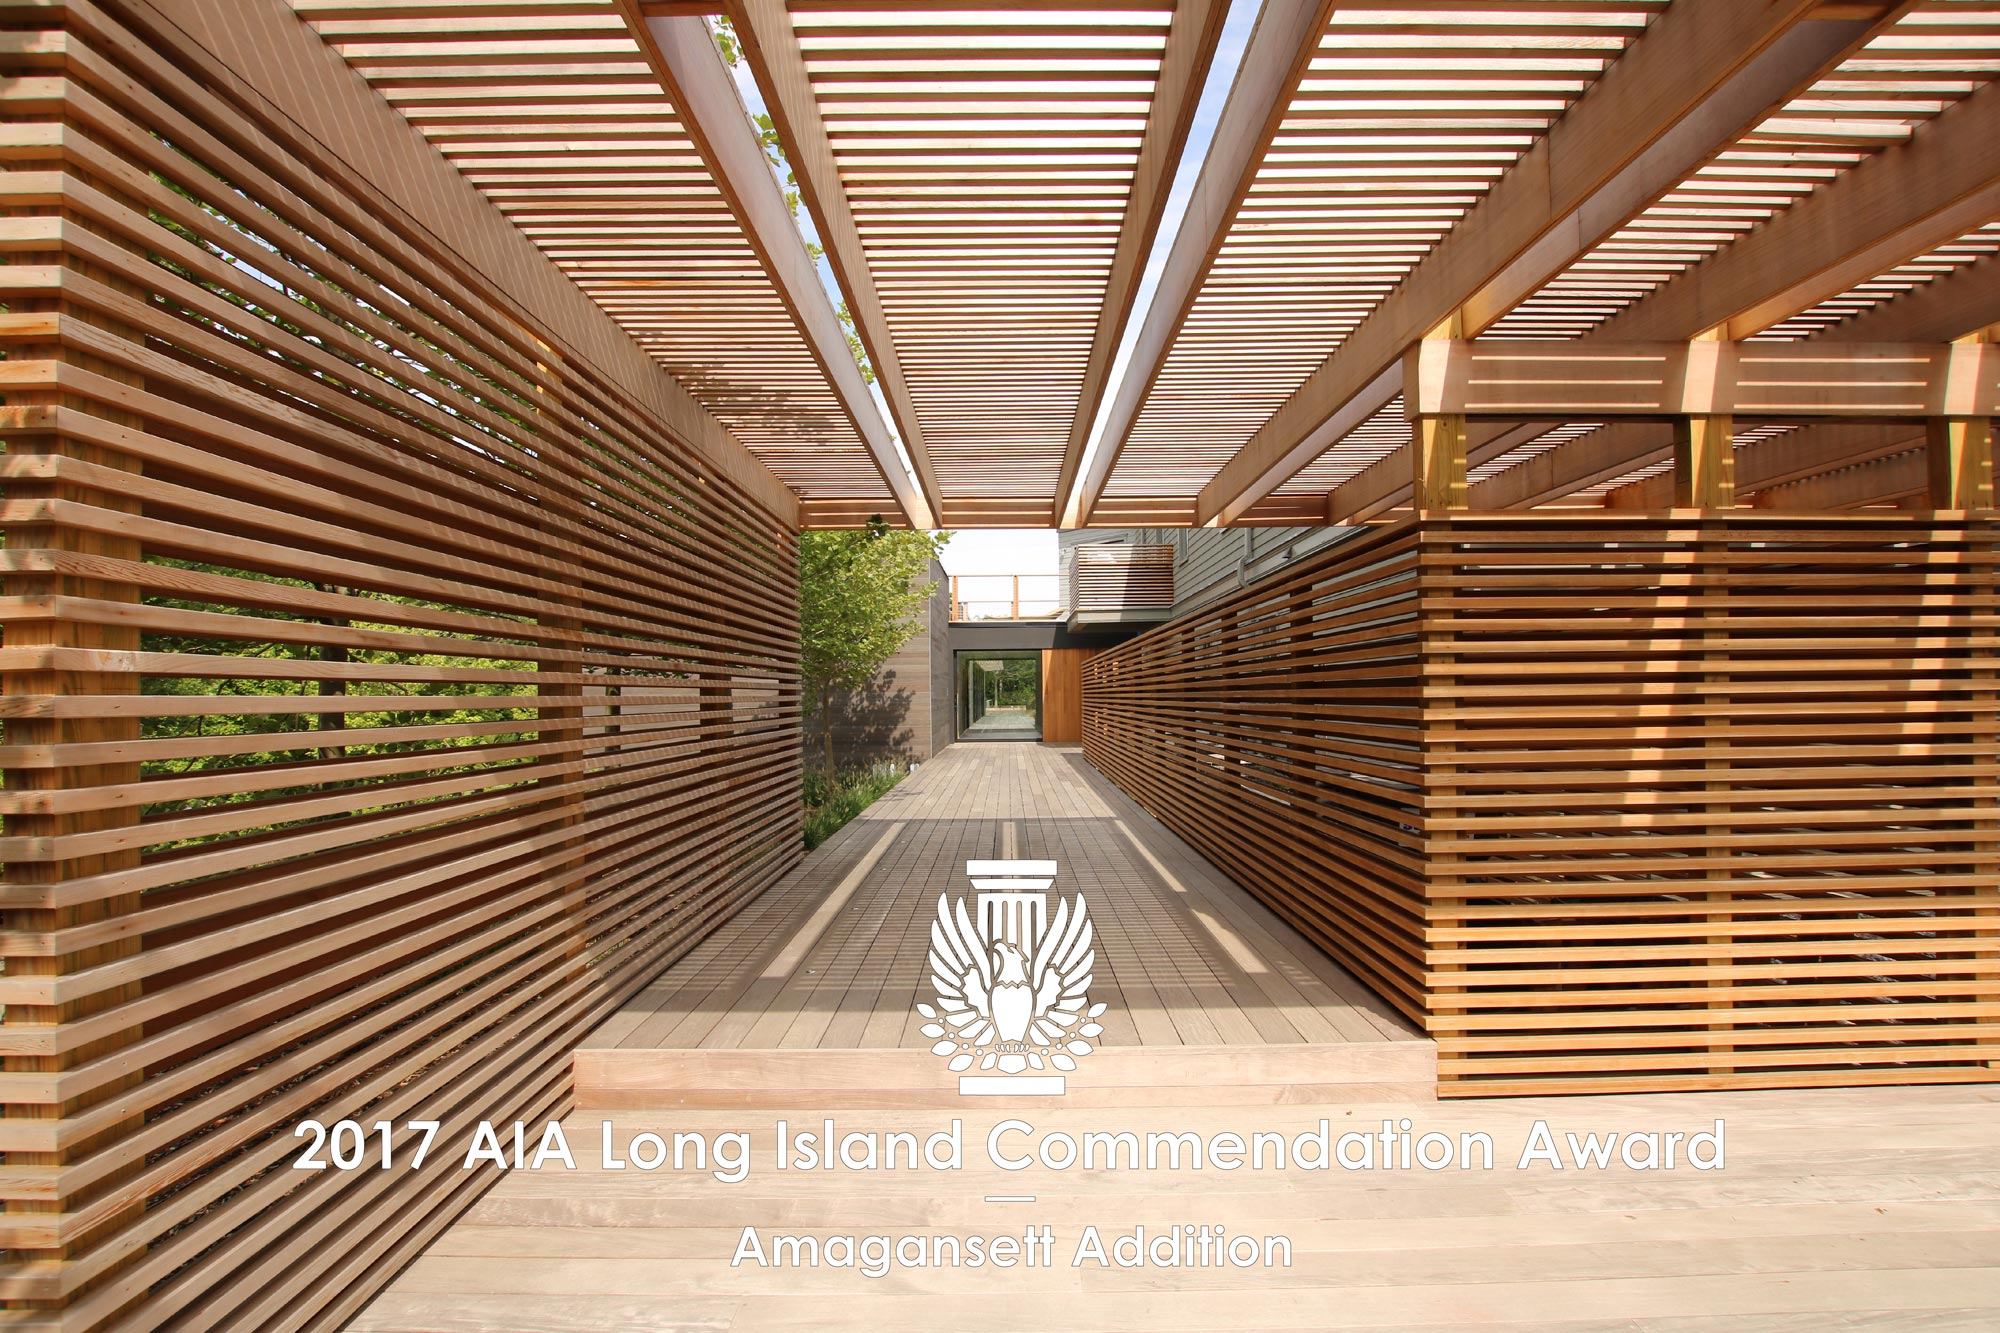 res4-resolution-4-architecture-modern-modular-home-prefab-amagansett-addition-aia-long-island-commendation-award-logo.jpg